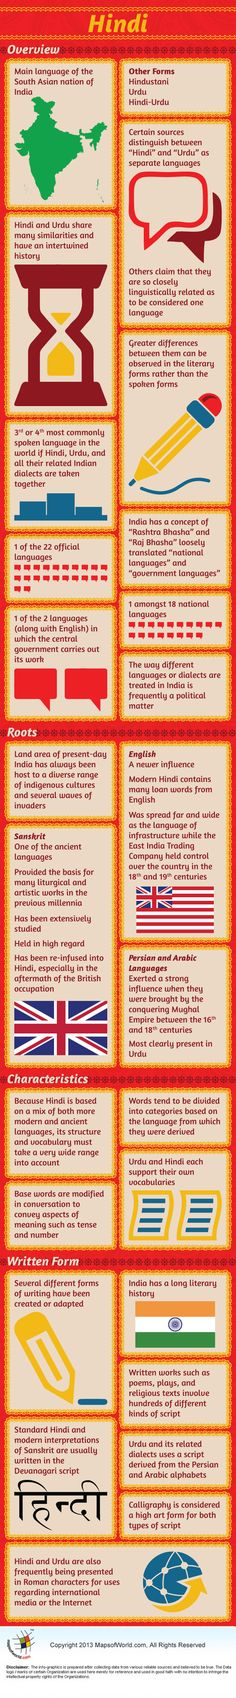 The main language of #India, Hindi is also known as hindi language. Check out this #Infographic